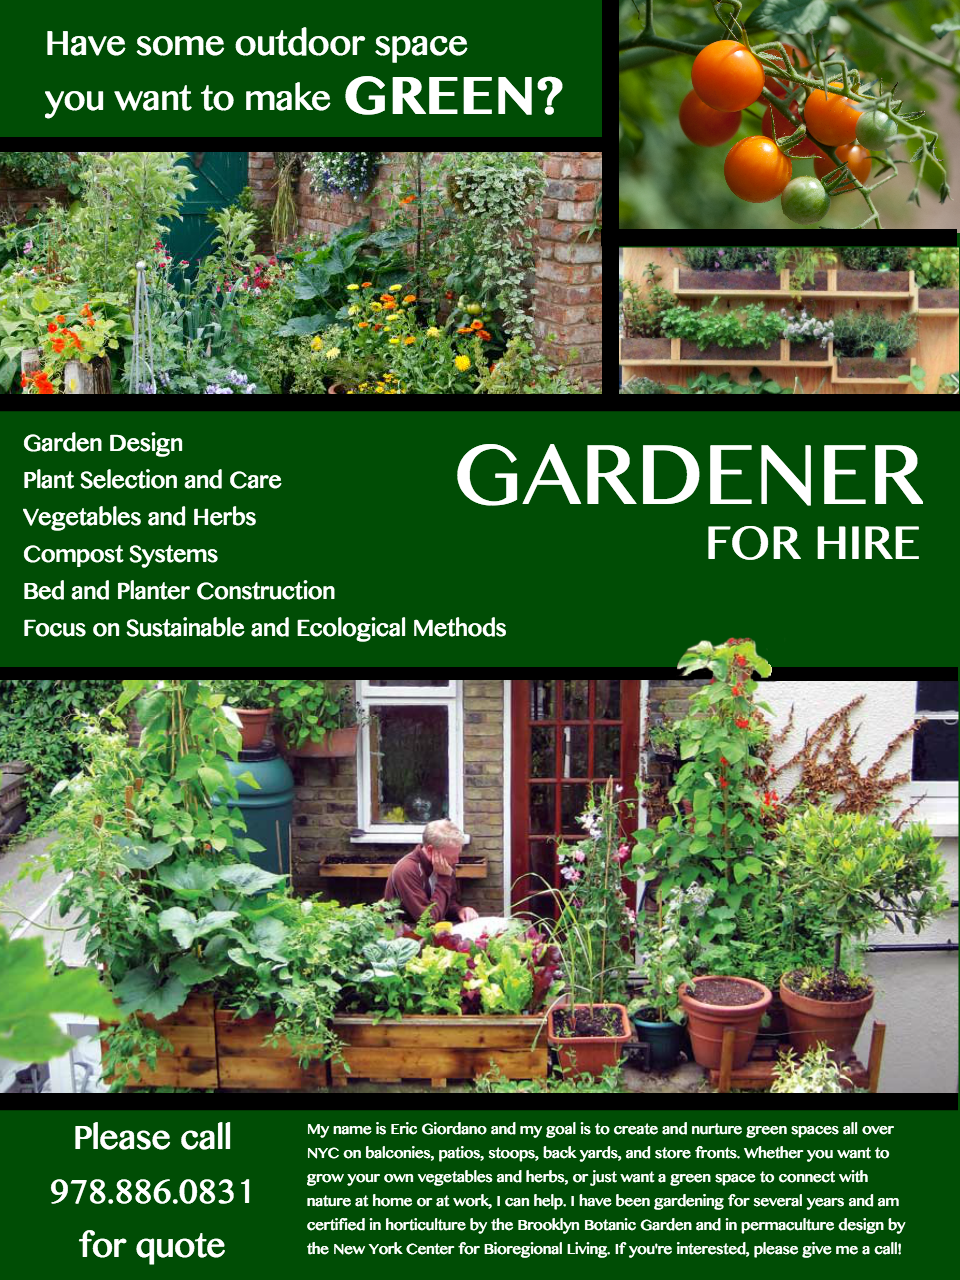 Would Love Some Feedback On This Flyer I Made For Gardening Services Gardening Garden Diy Home Flowers Ro Garden Services Garden Design Organic Gardening